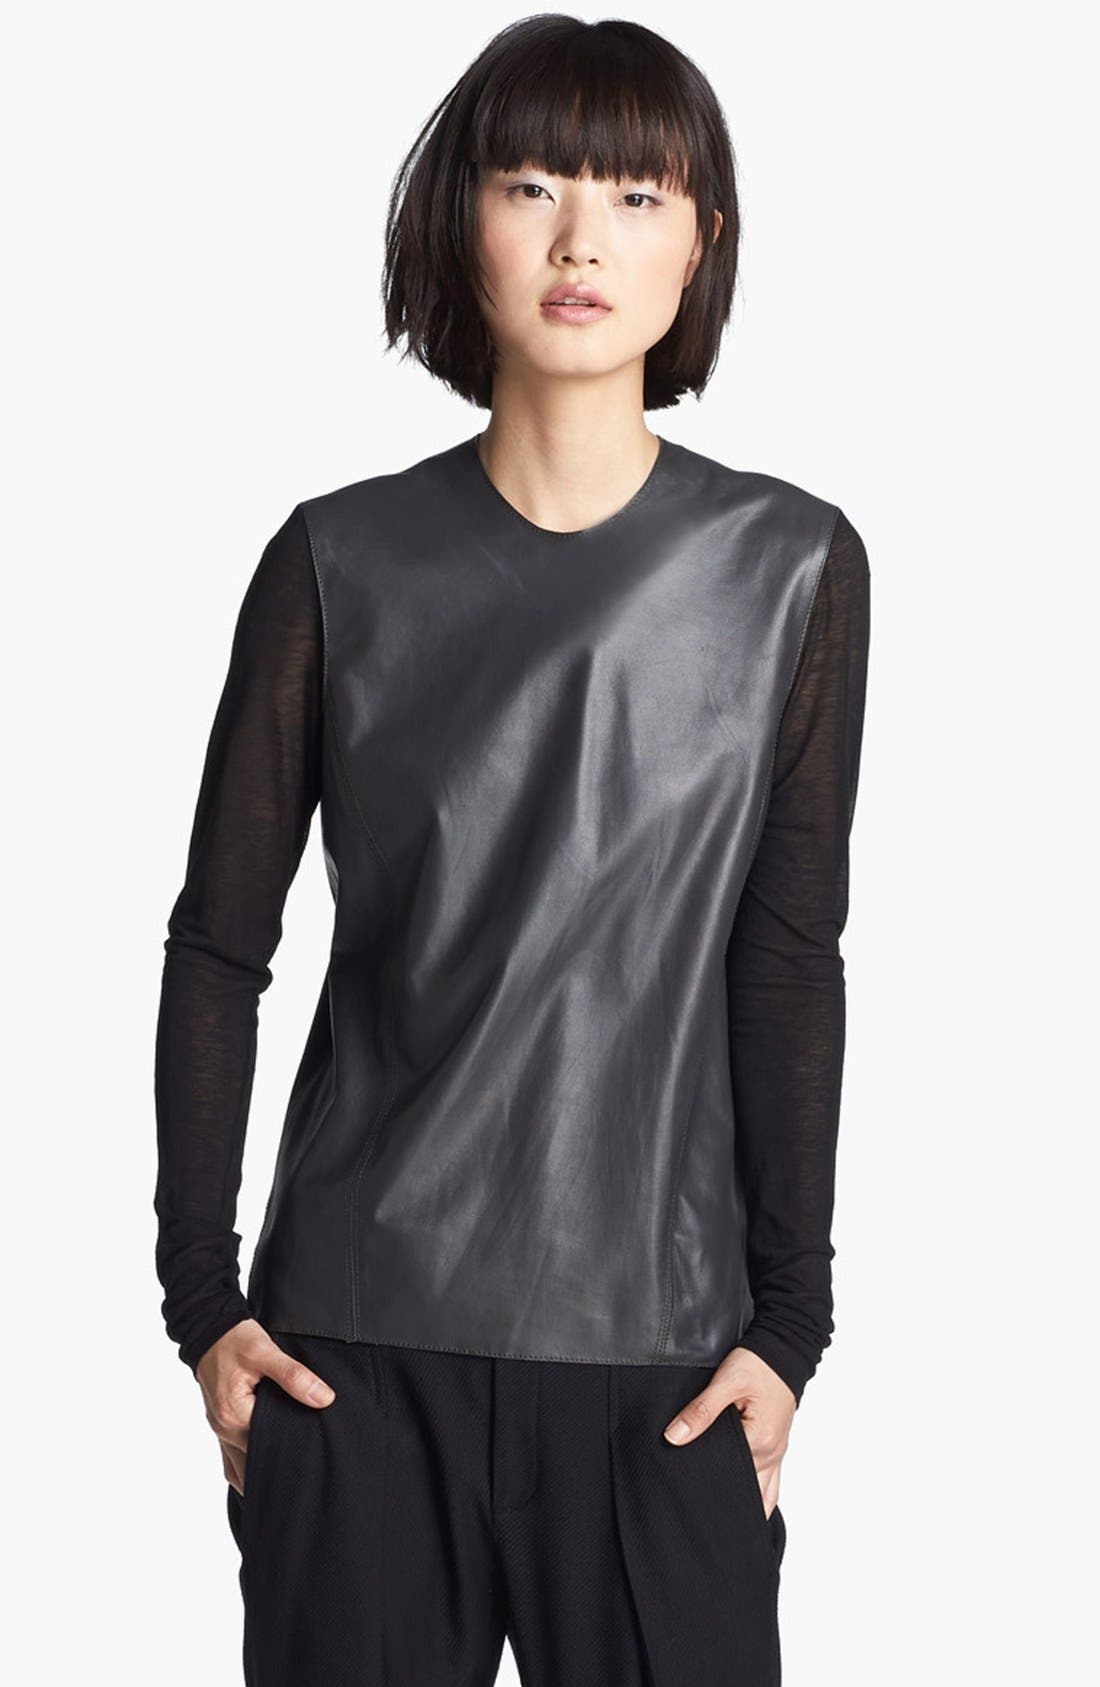 Main Image - Helmut Lang Knit Sleeve Leather Top